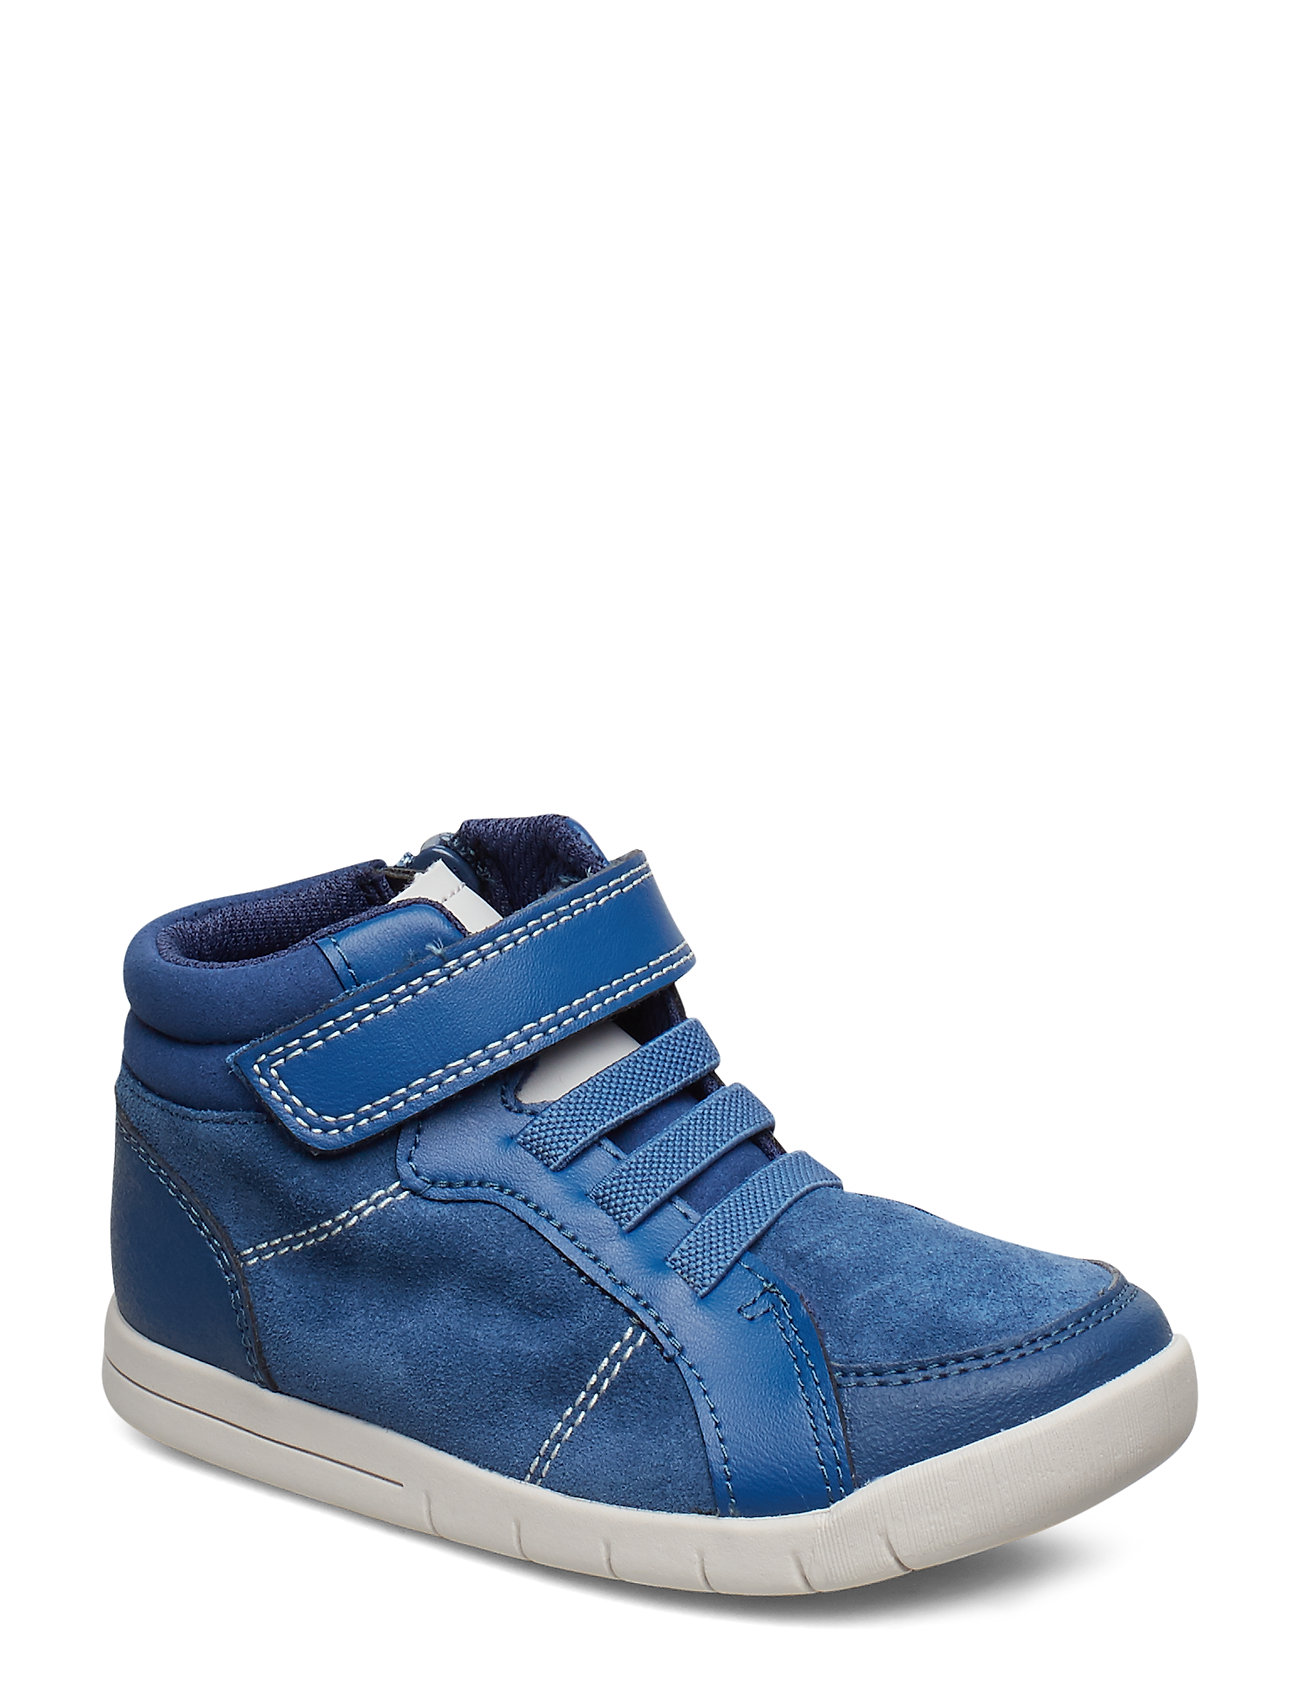 Clarks Emery Beat T - BLUE LEATHER